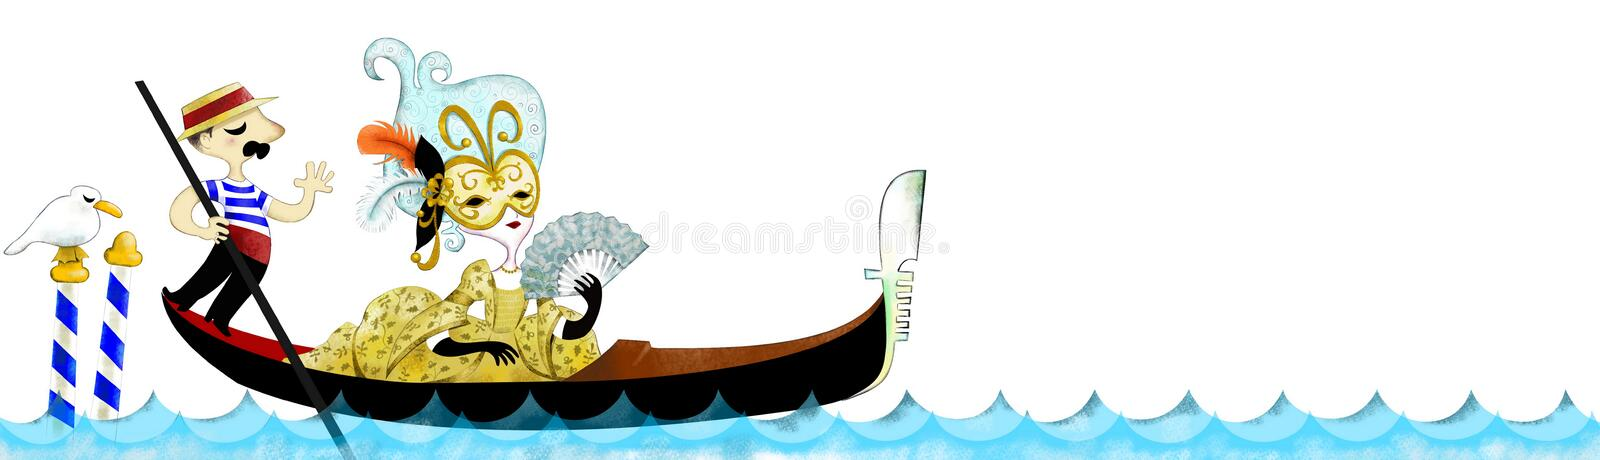 Download Gondola Veneziana stock illustration. Image of veneziano - 23543382